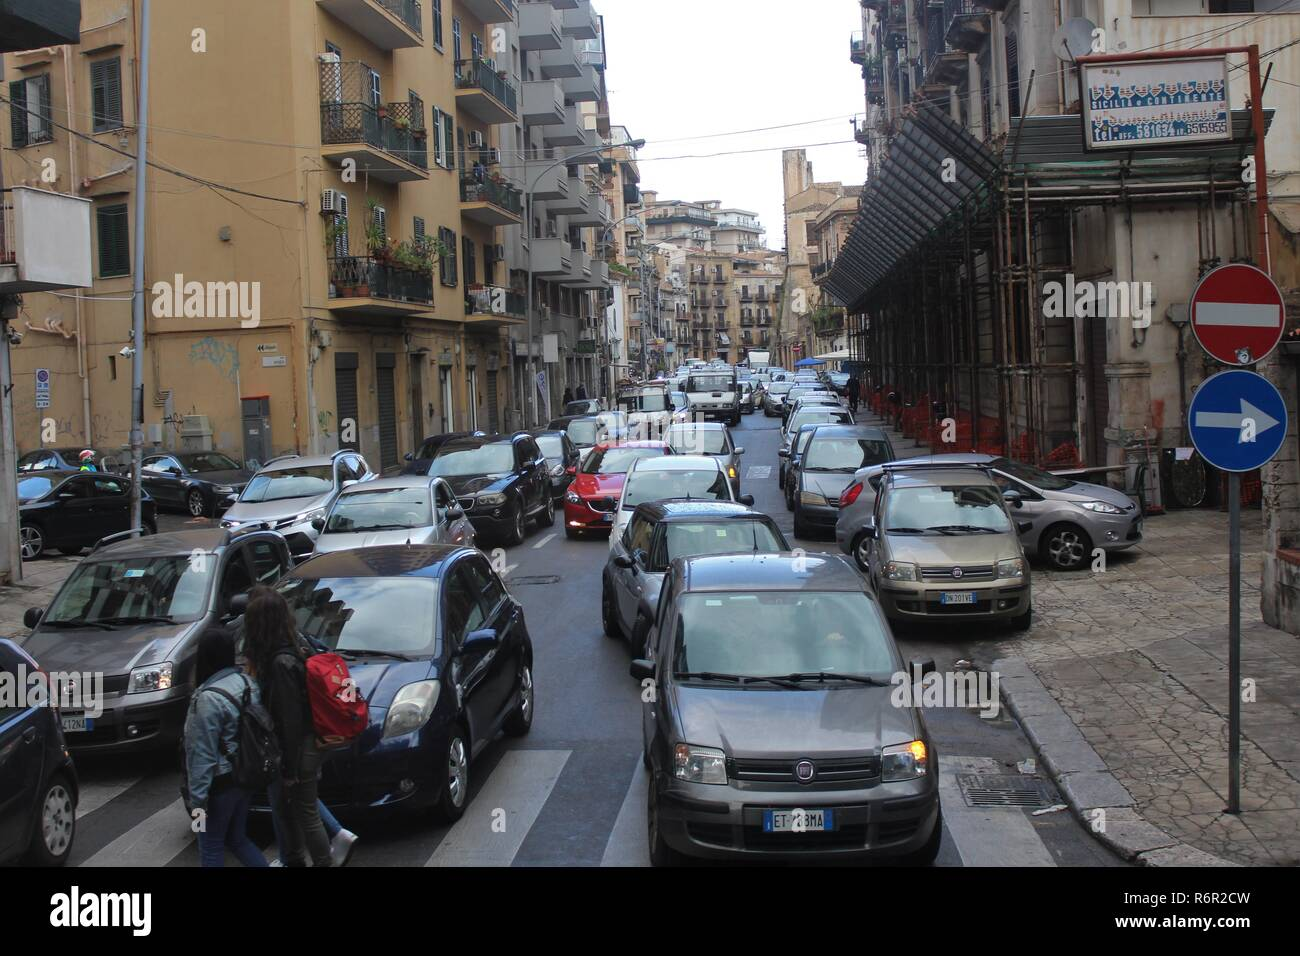 Palermo, Sicily, Italy - October 22nd 2018: Traffic congestion in Palermo, which is one of the most hazardous cities in Italy for driving in. - Stock Image